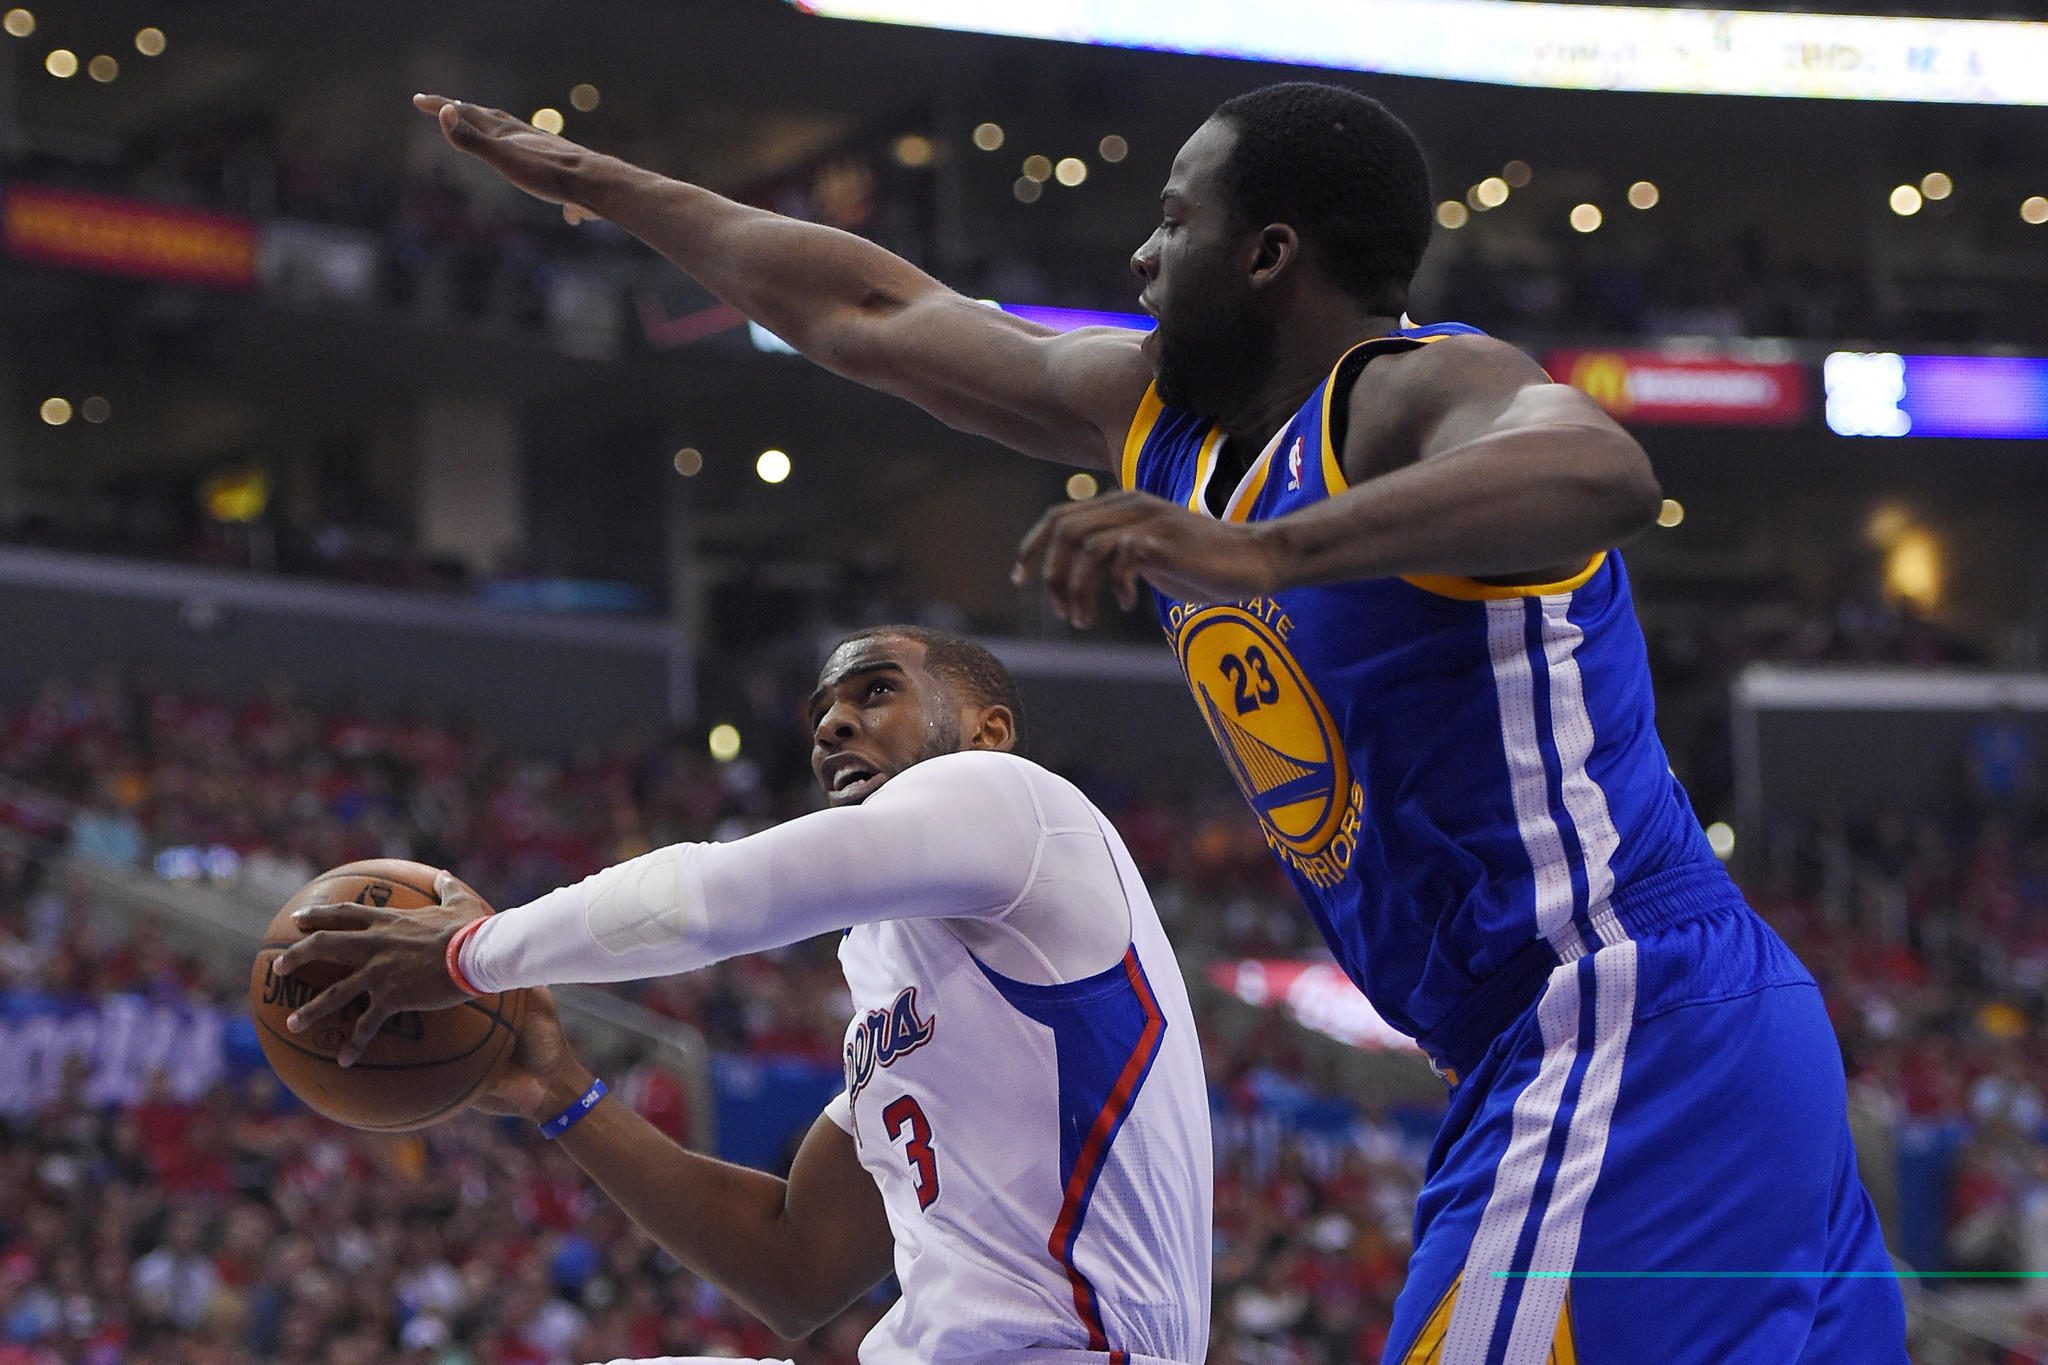 The Clippers' Chris Paul goes up for a shot Saturday against Golden State's Draymond Green.